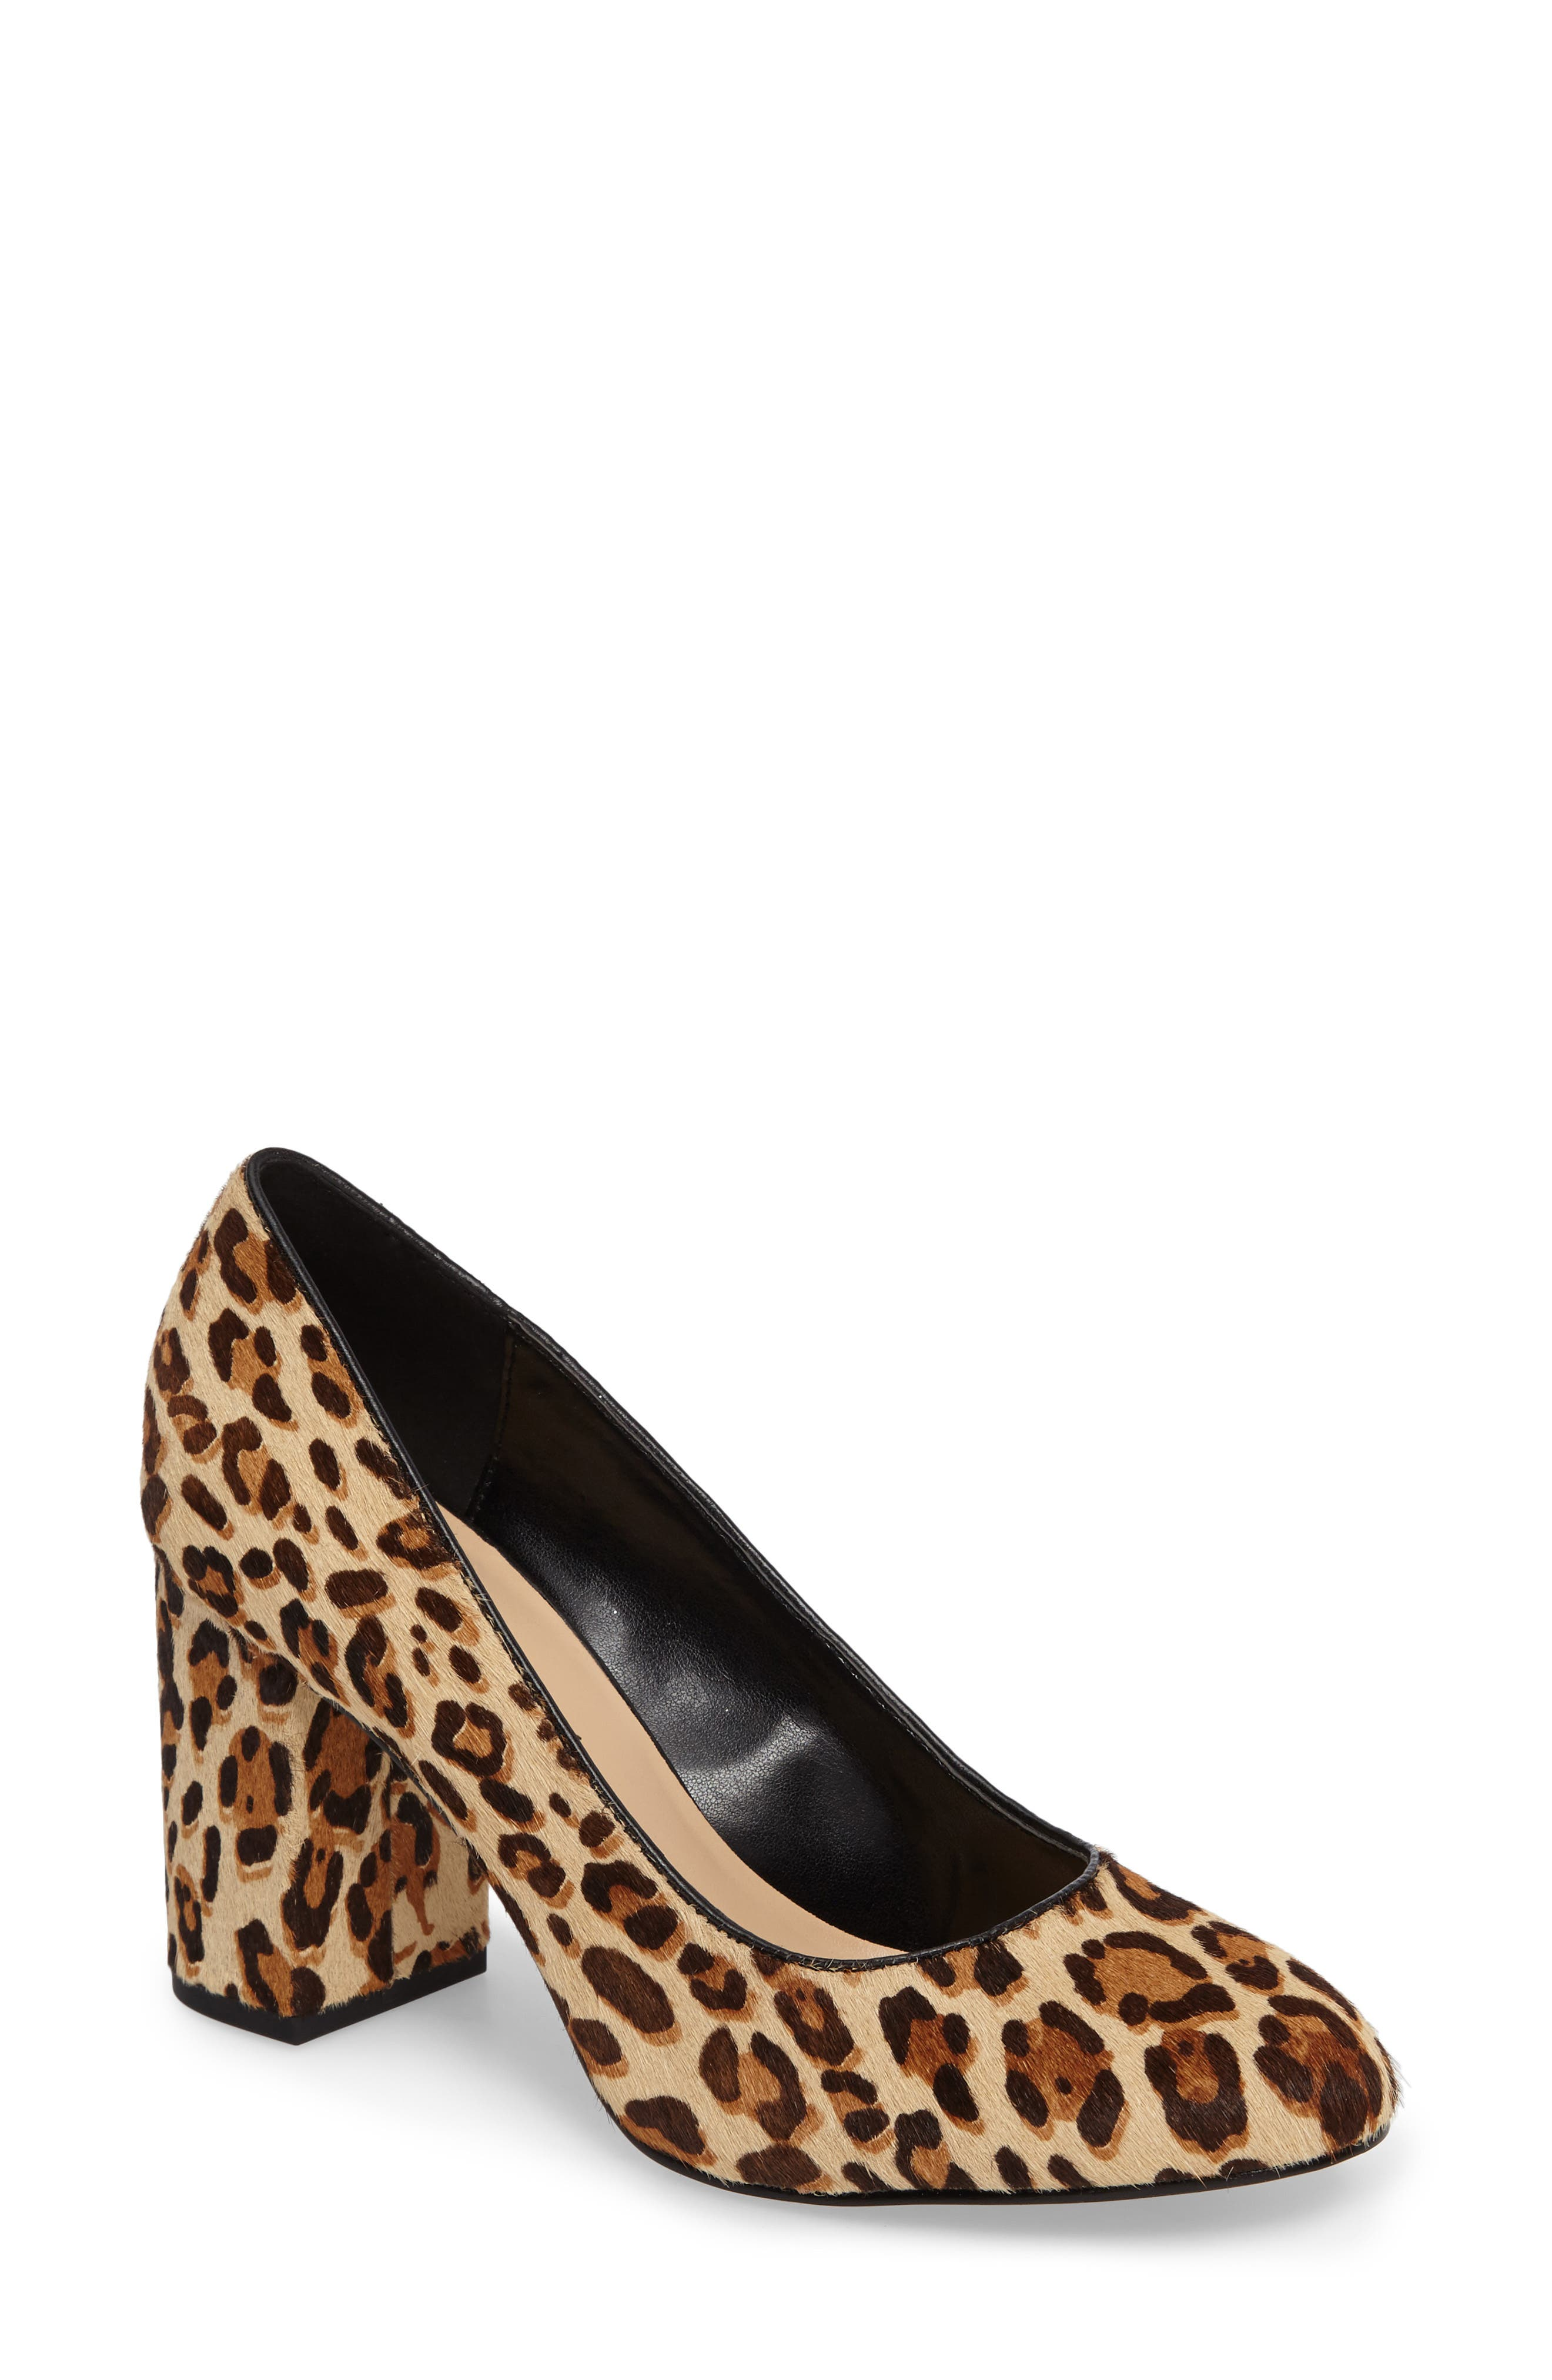 'Nara' Block Heel Pump,                         Main,                         color, Leopard Pony Calf Hair